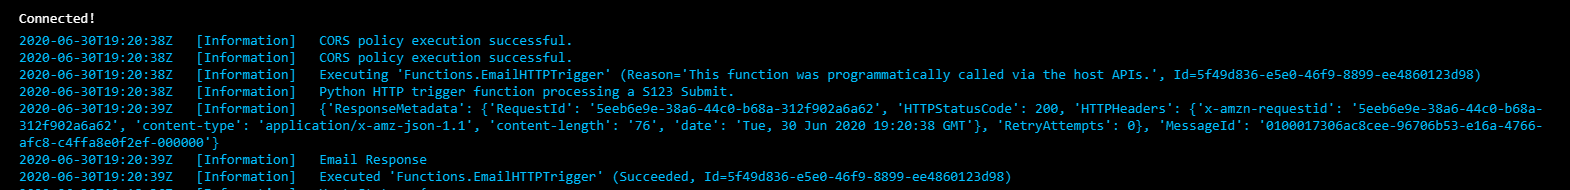 Example output of the Log stream when successfully running the function.